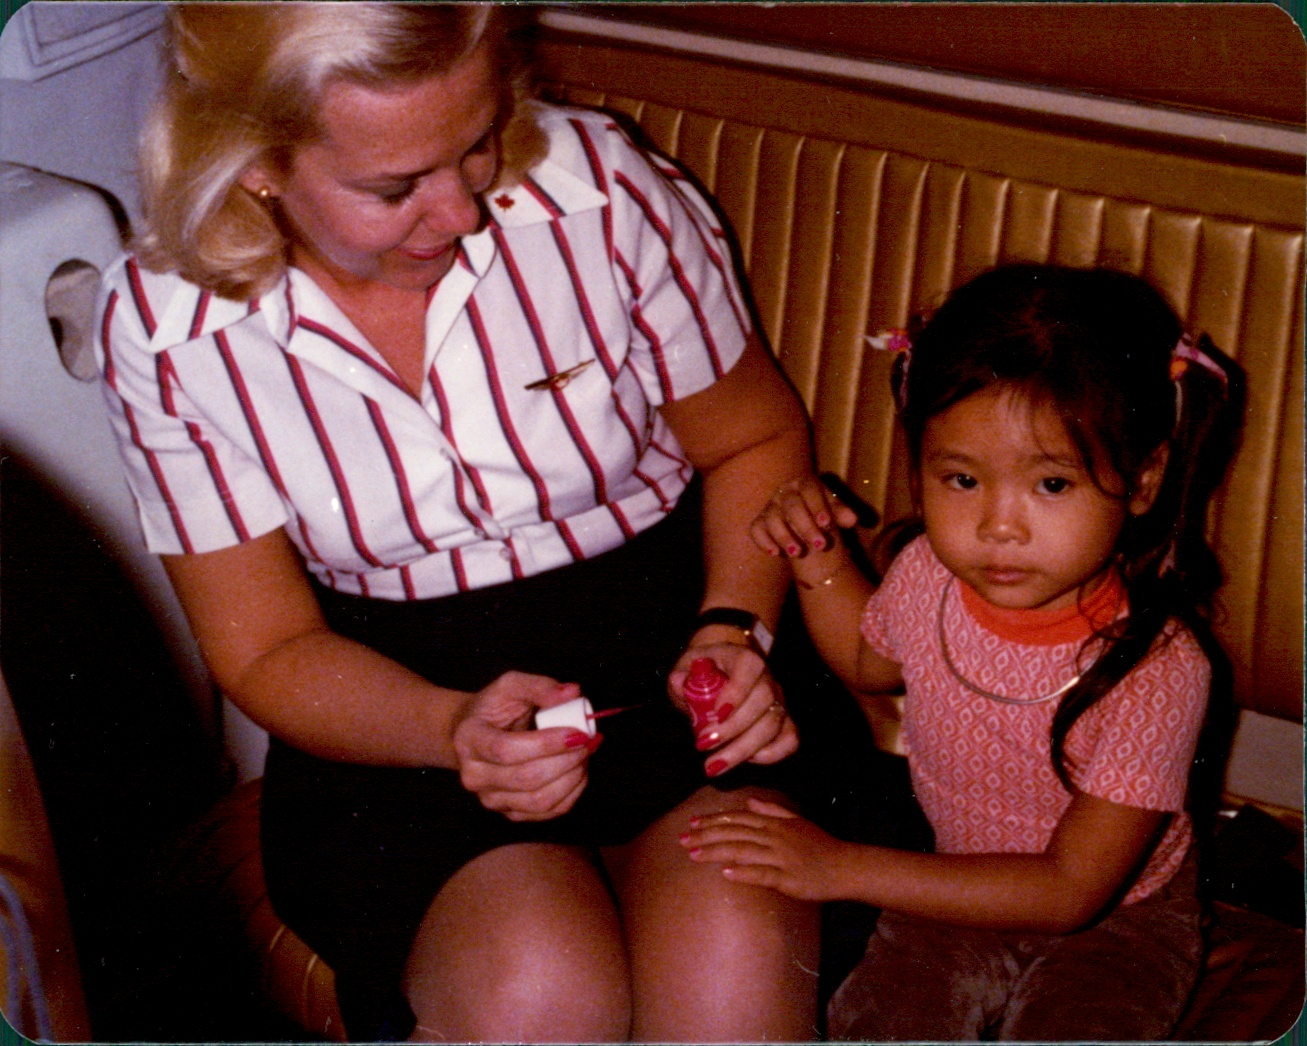 Lillian (Marsh) Wright painting nails with little girl.